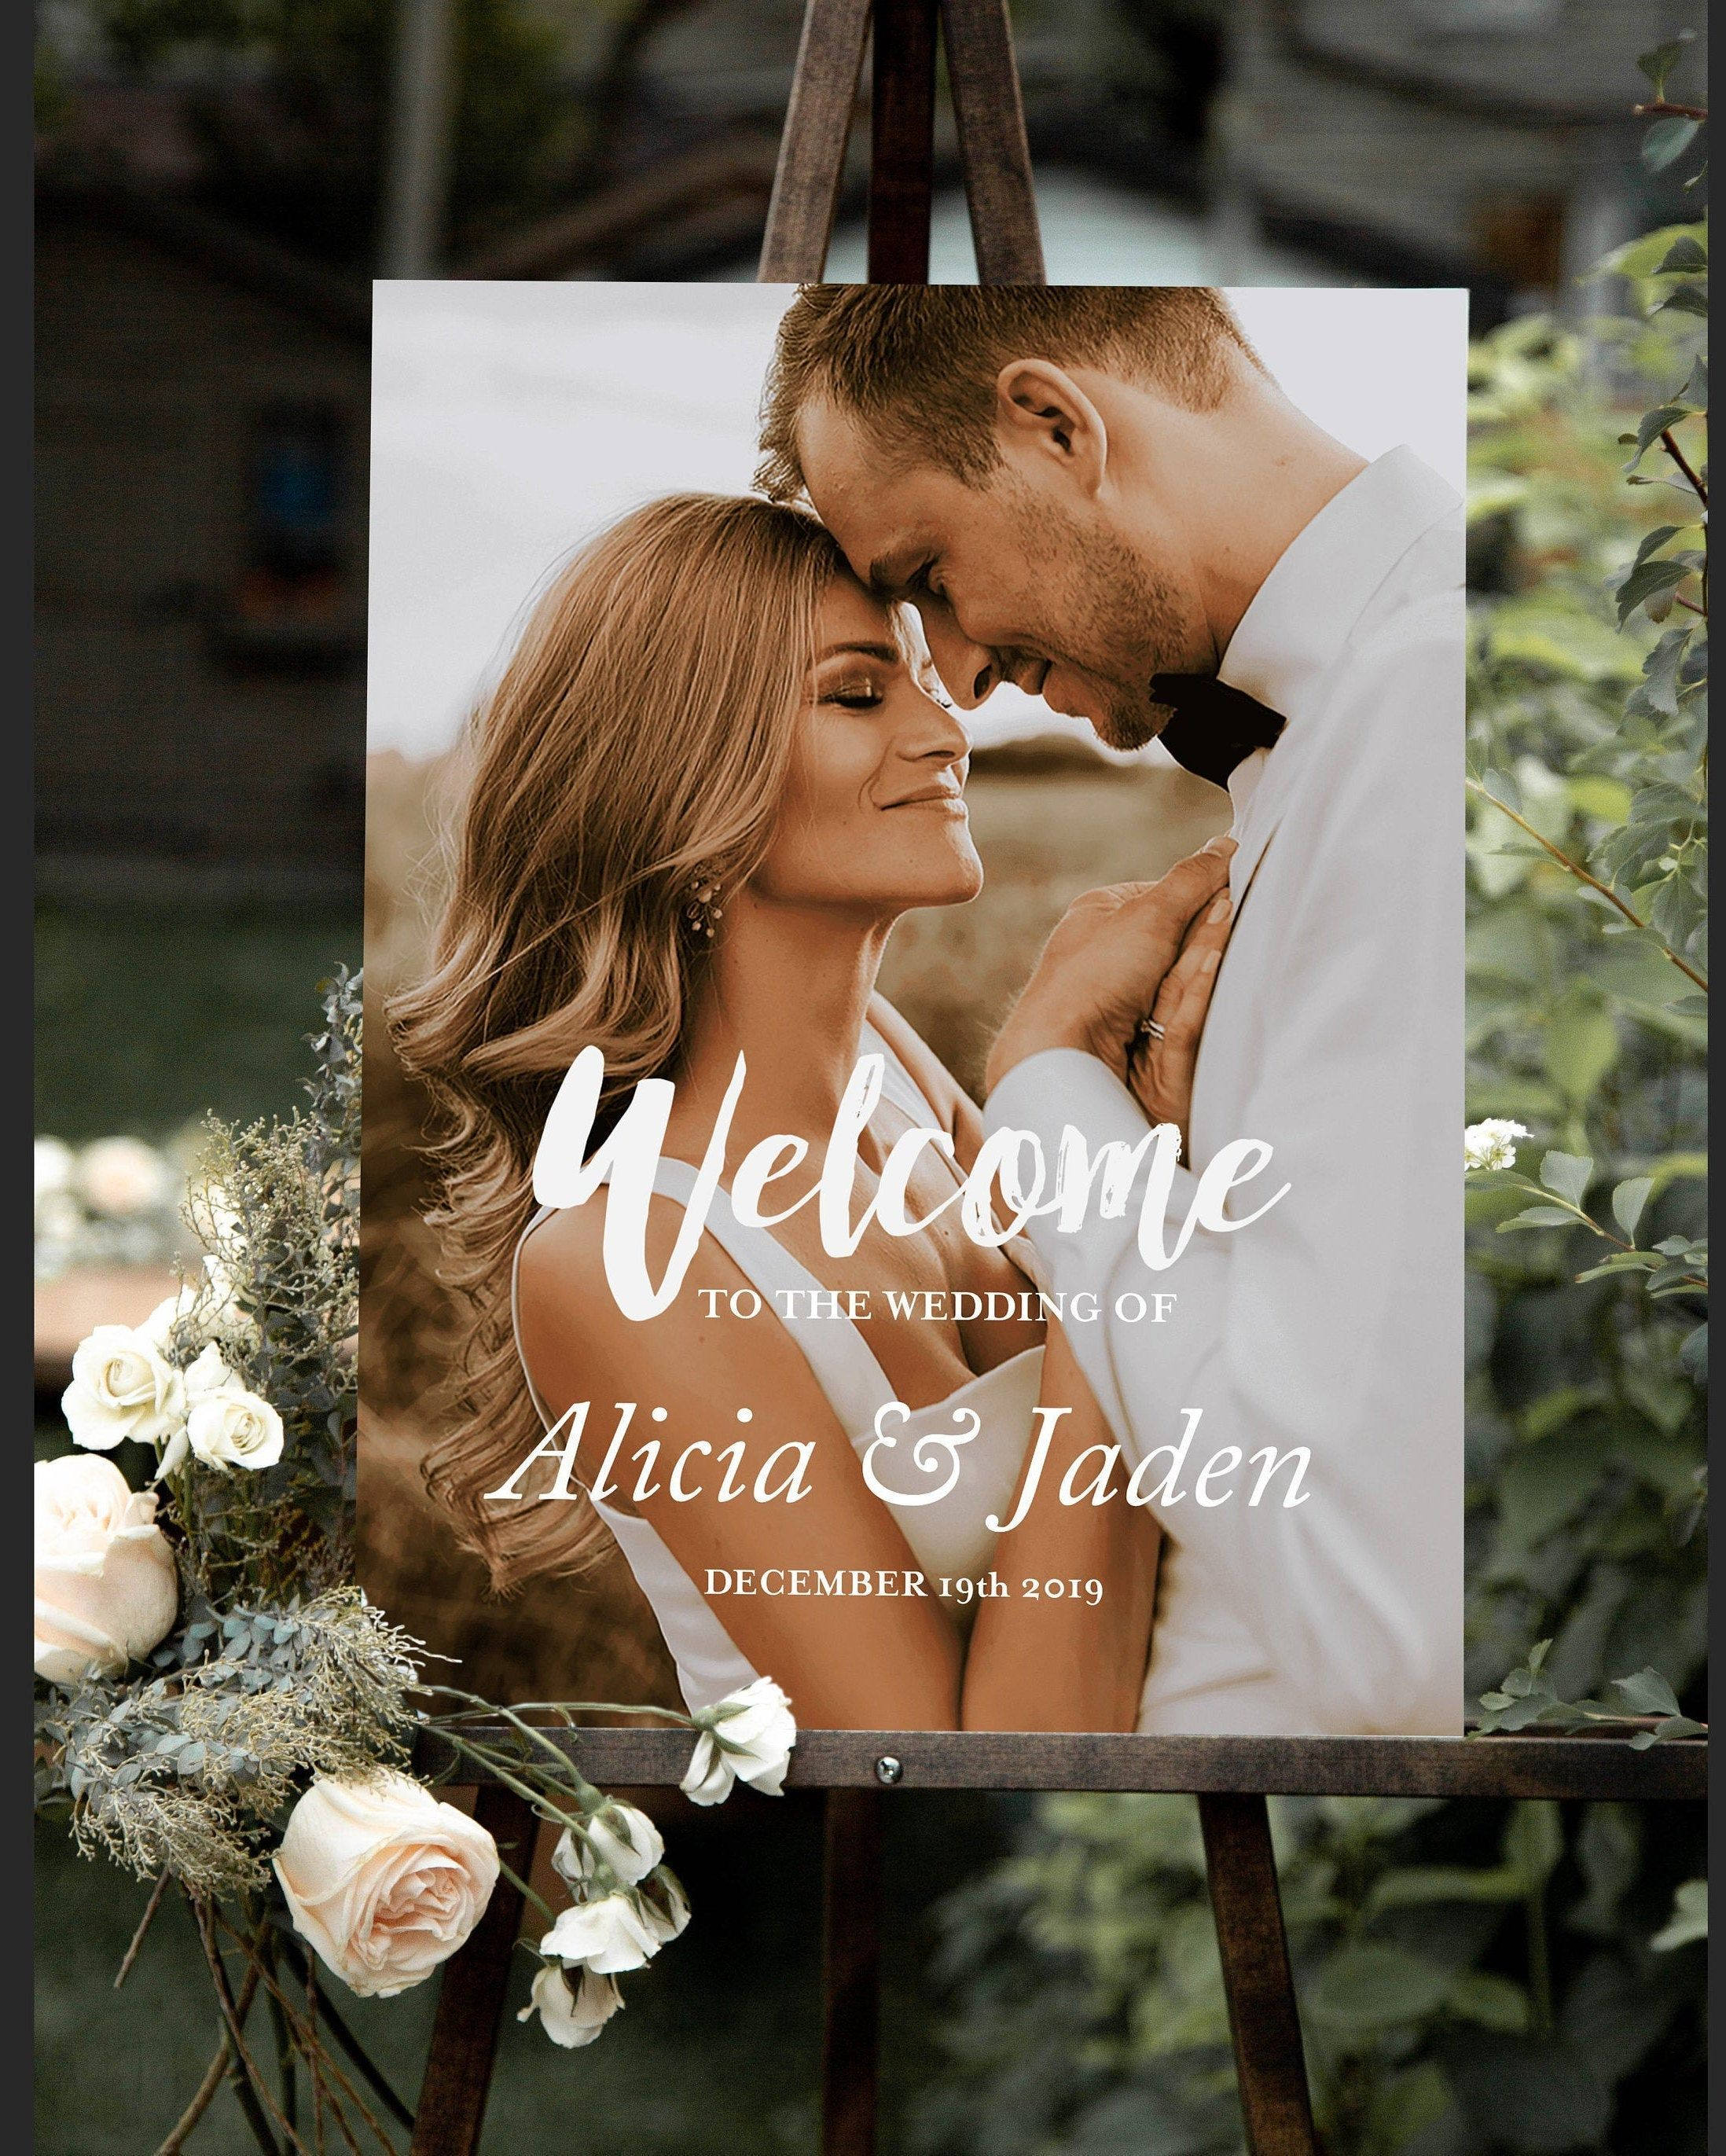 Wedding welcome sign with photo, Welcome sign, Wedding welcome photo sign, Welcome our wedding signs, DIGITAL signage, picture welcome sign